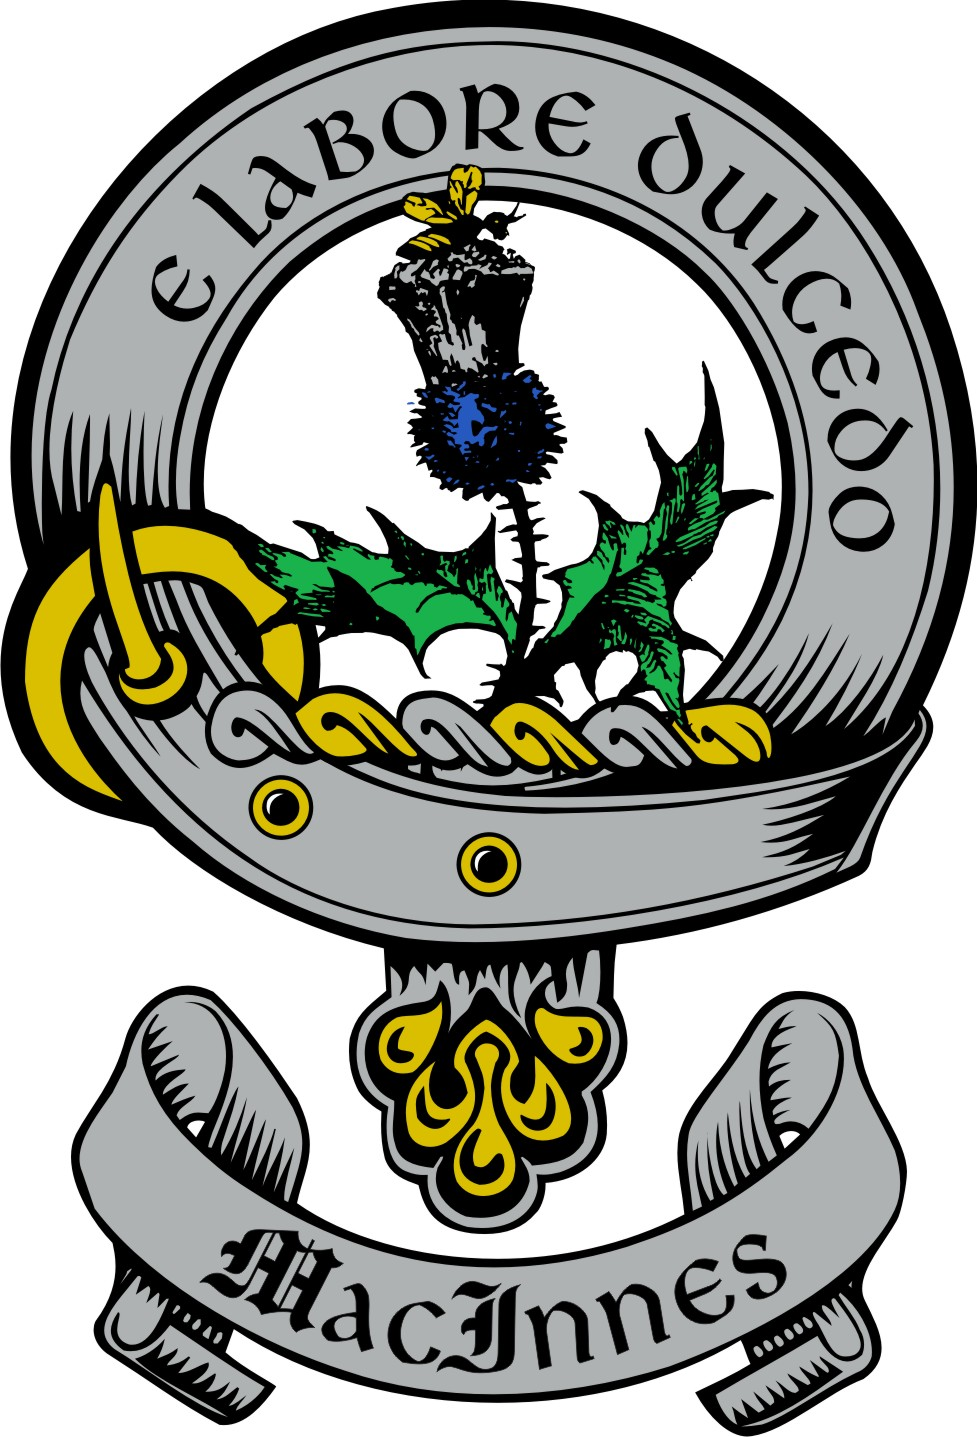 - This first crest and motto was adopted in the 13th century during the Viking raid on Morvern described above. The traditional emblem of the clan is the bee on a thistle flower, with the Gaelic motto:'E Labore Dulcedo' -